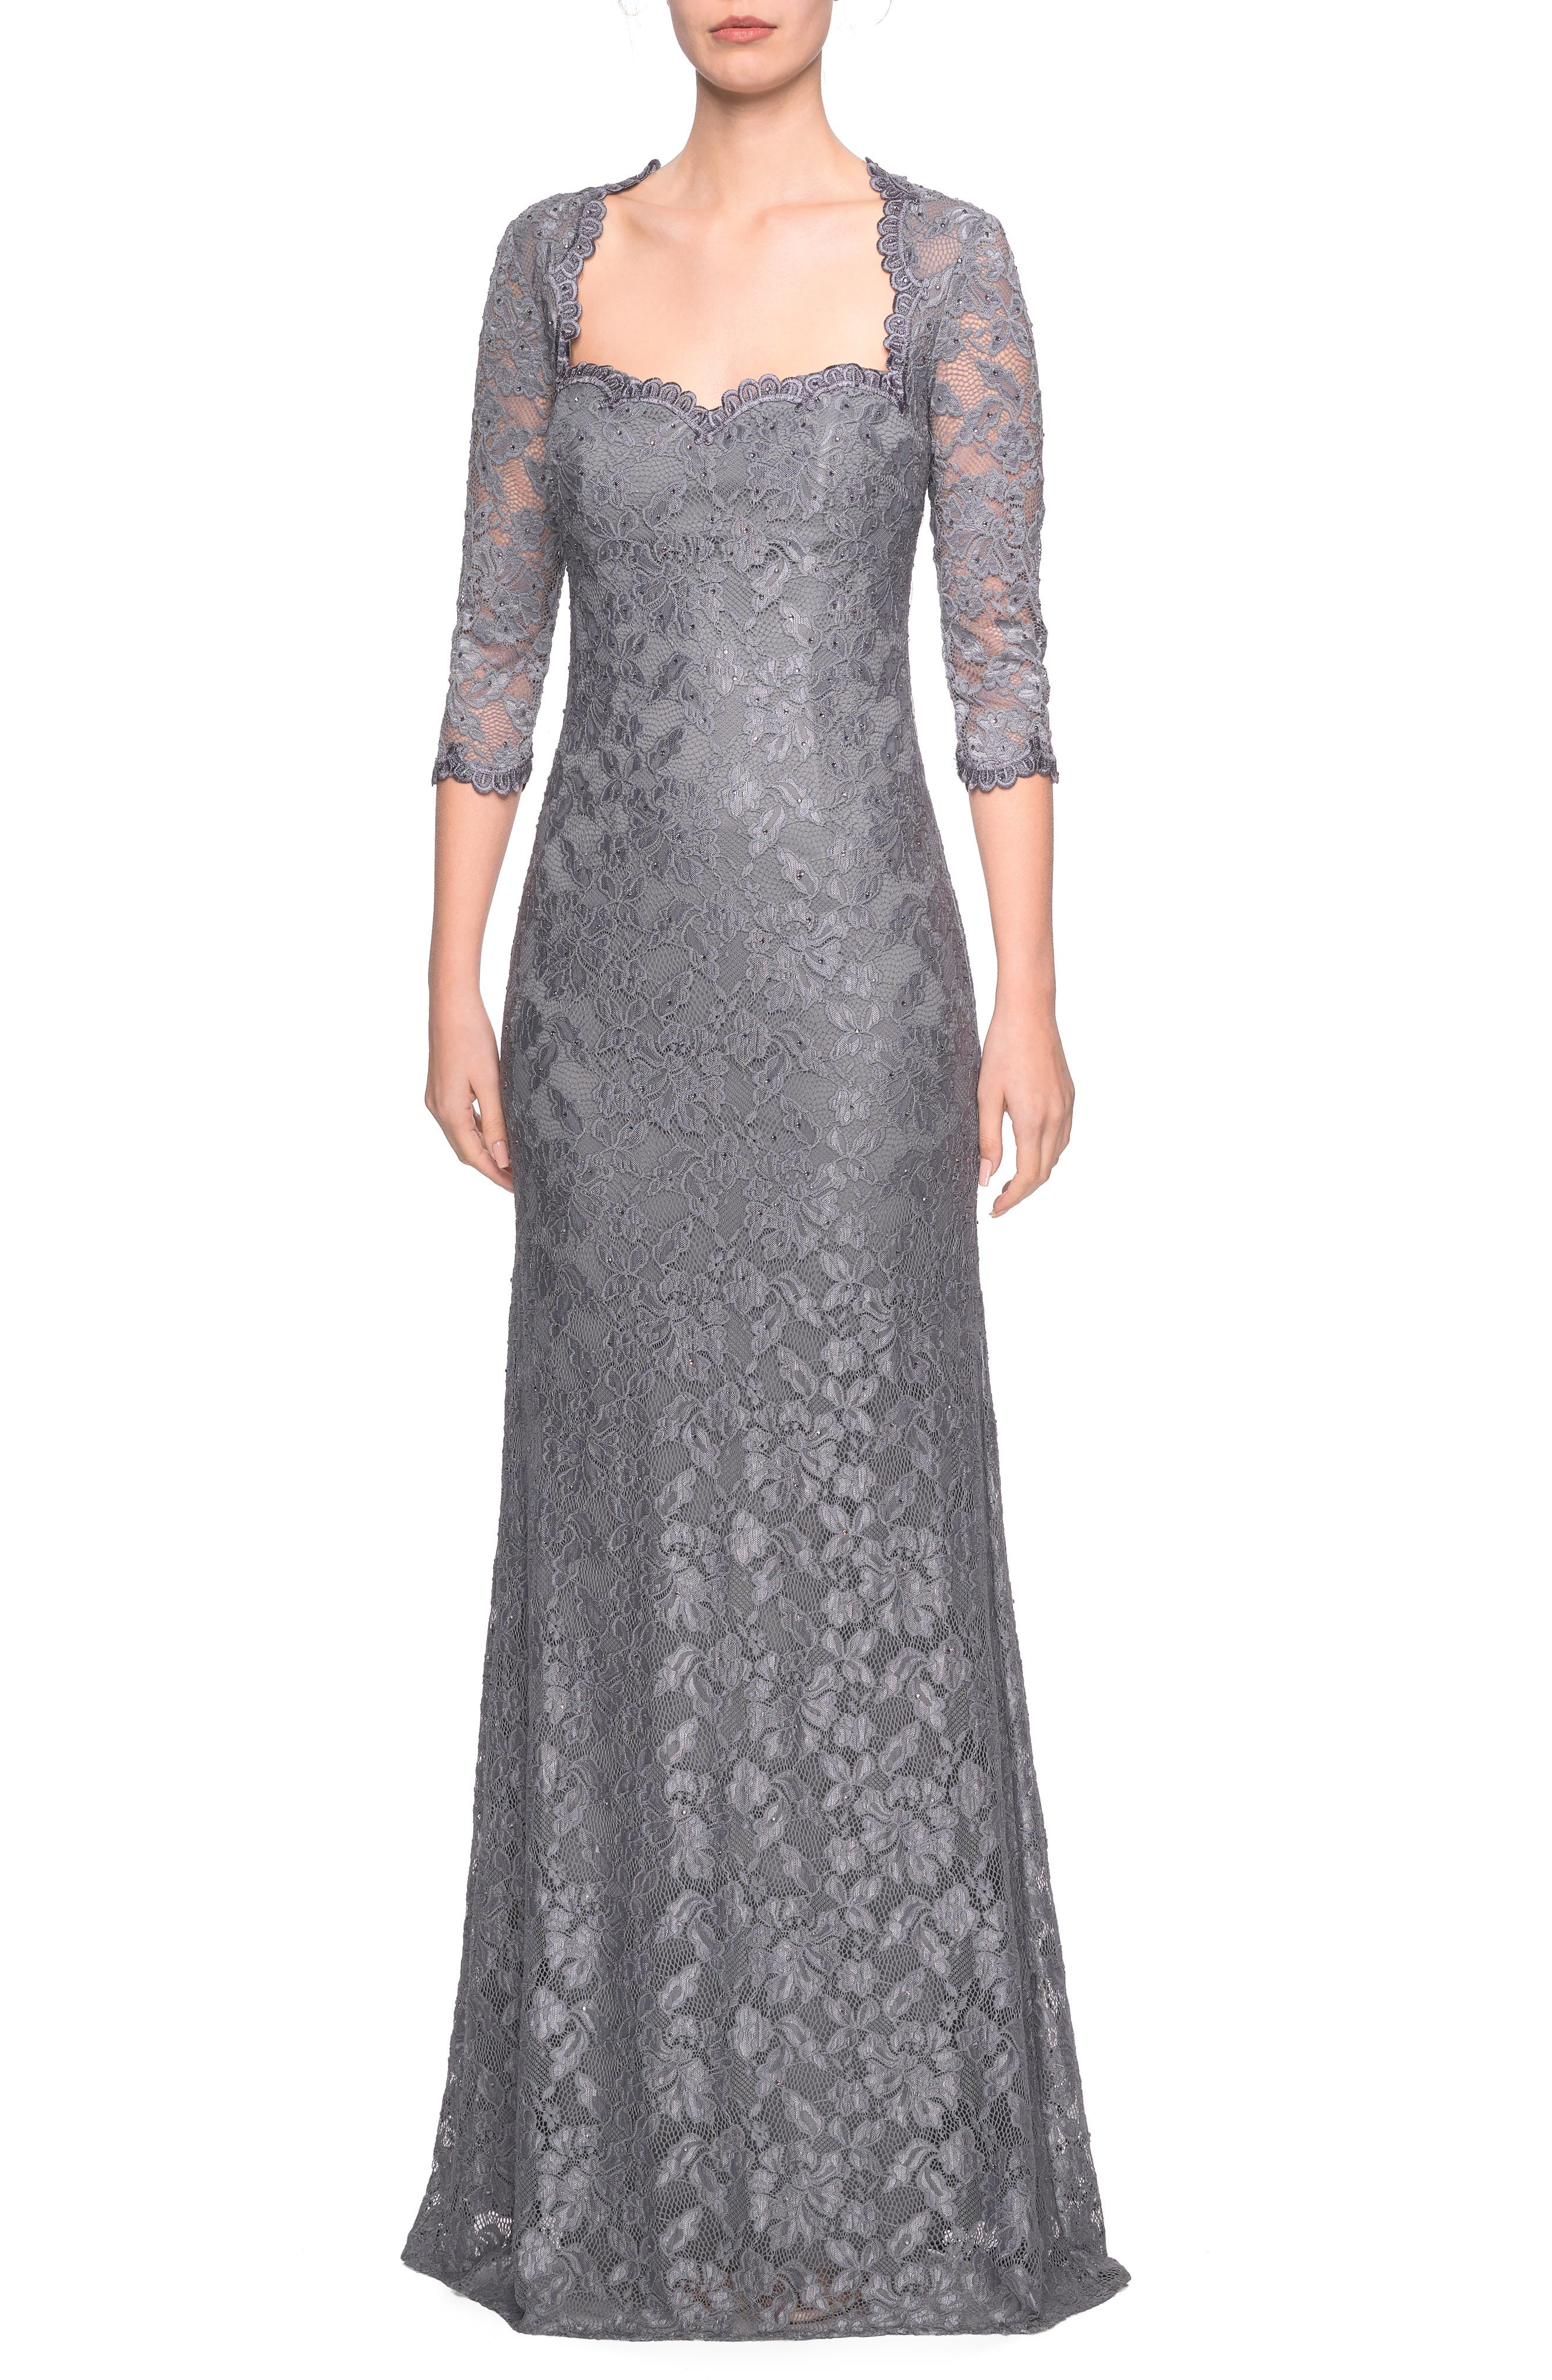 1940s Formal Dresses, Evening Gowns History Womens La Femme Lace Column Gown Size 20 similar to 18W-20W - Grey $398.00 AT vintagedancer.com